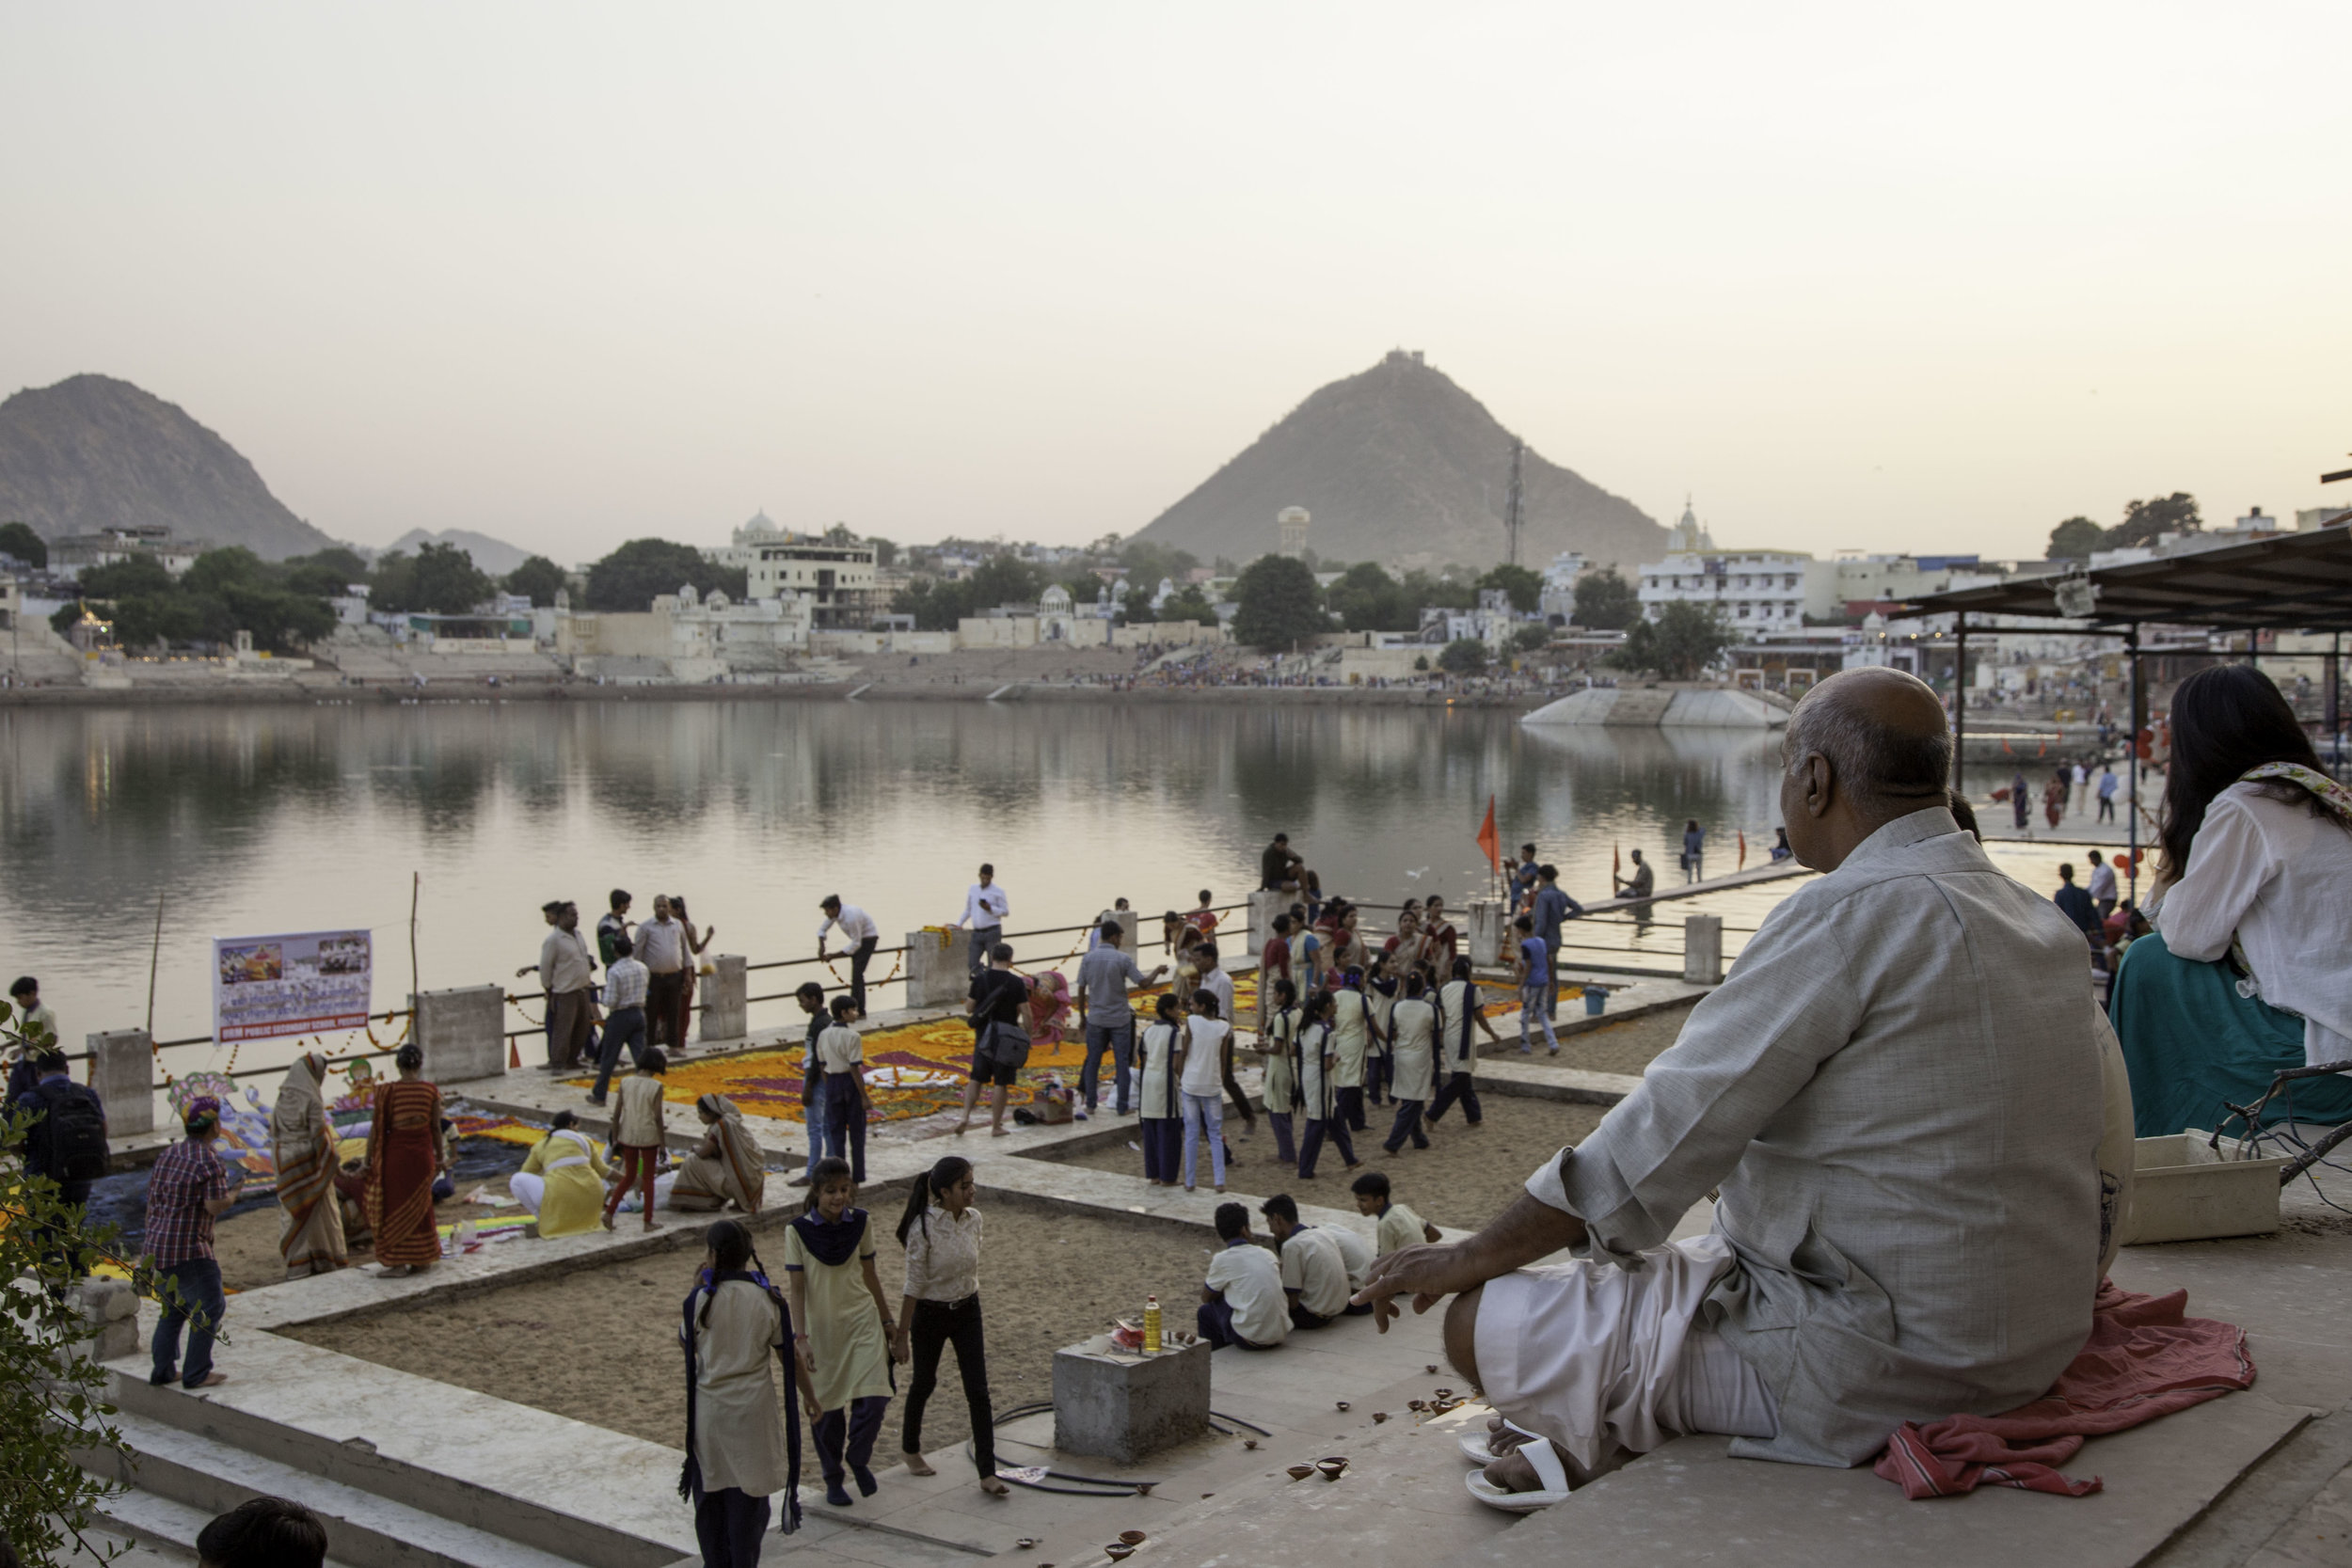 Pilgrims gather around the bathing ghats of Pushkar Lake.